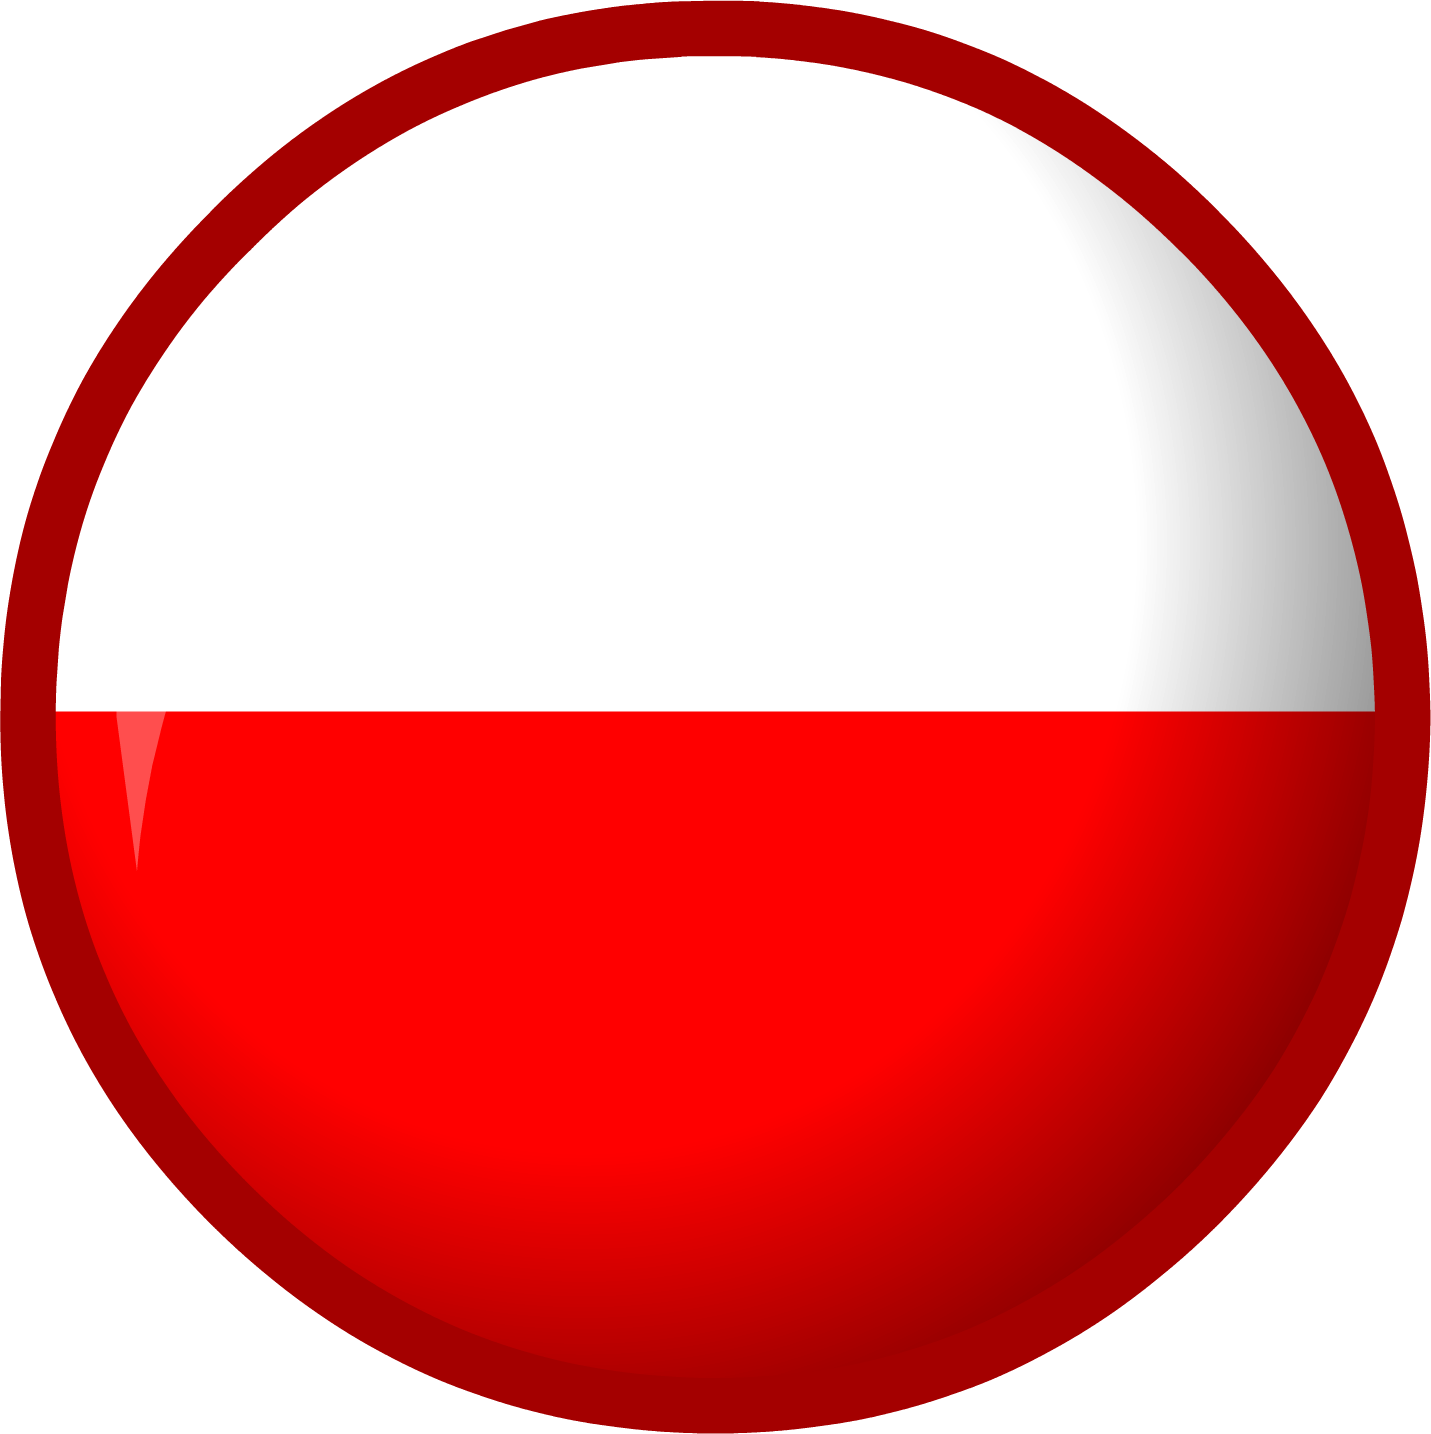 poland flag club penguin wiki fandom powered by wikia igloo clip art free igloo clip art white in middle